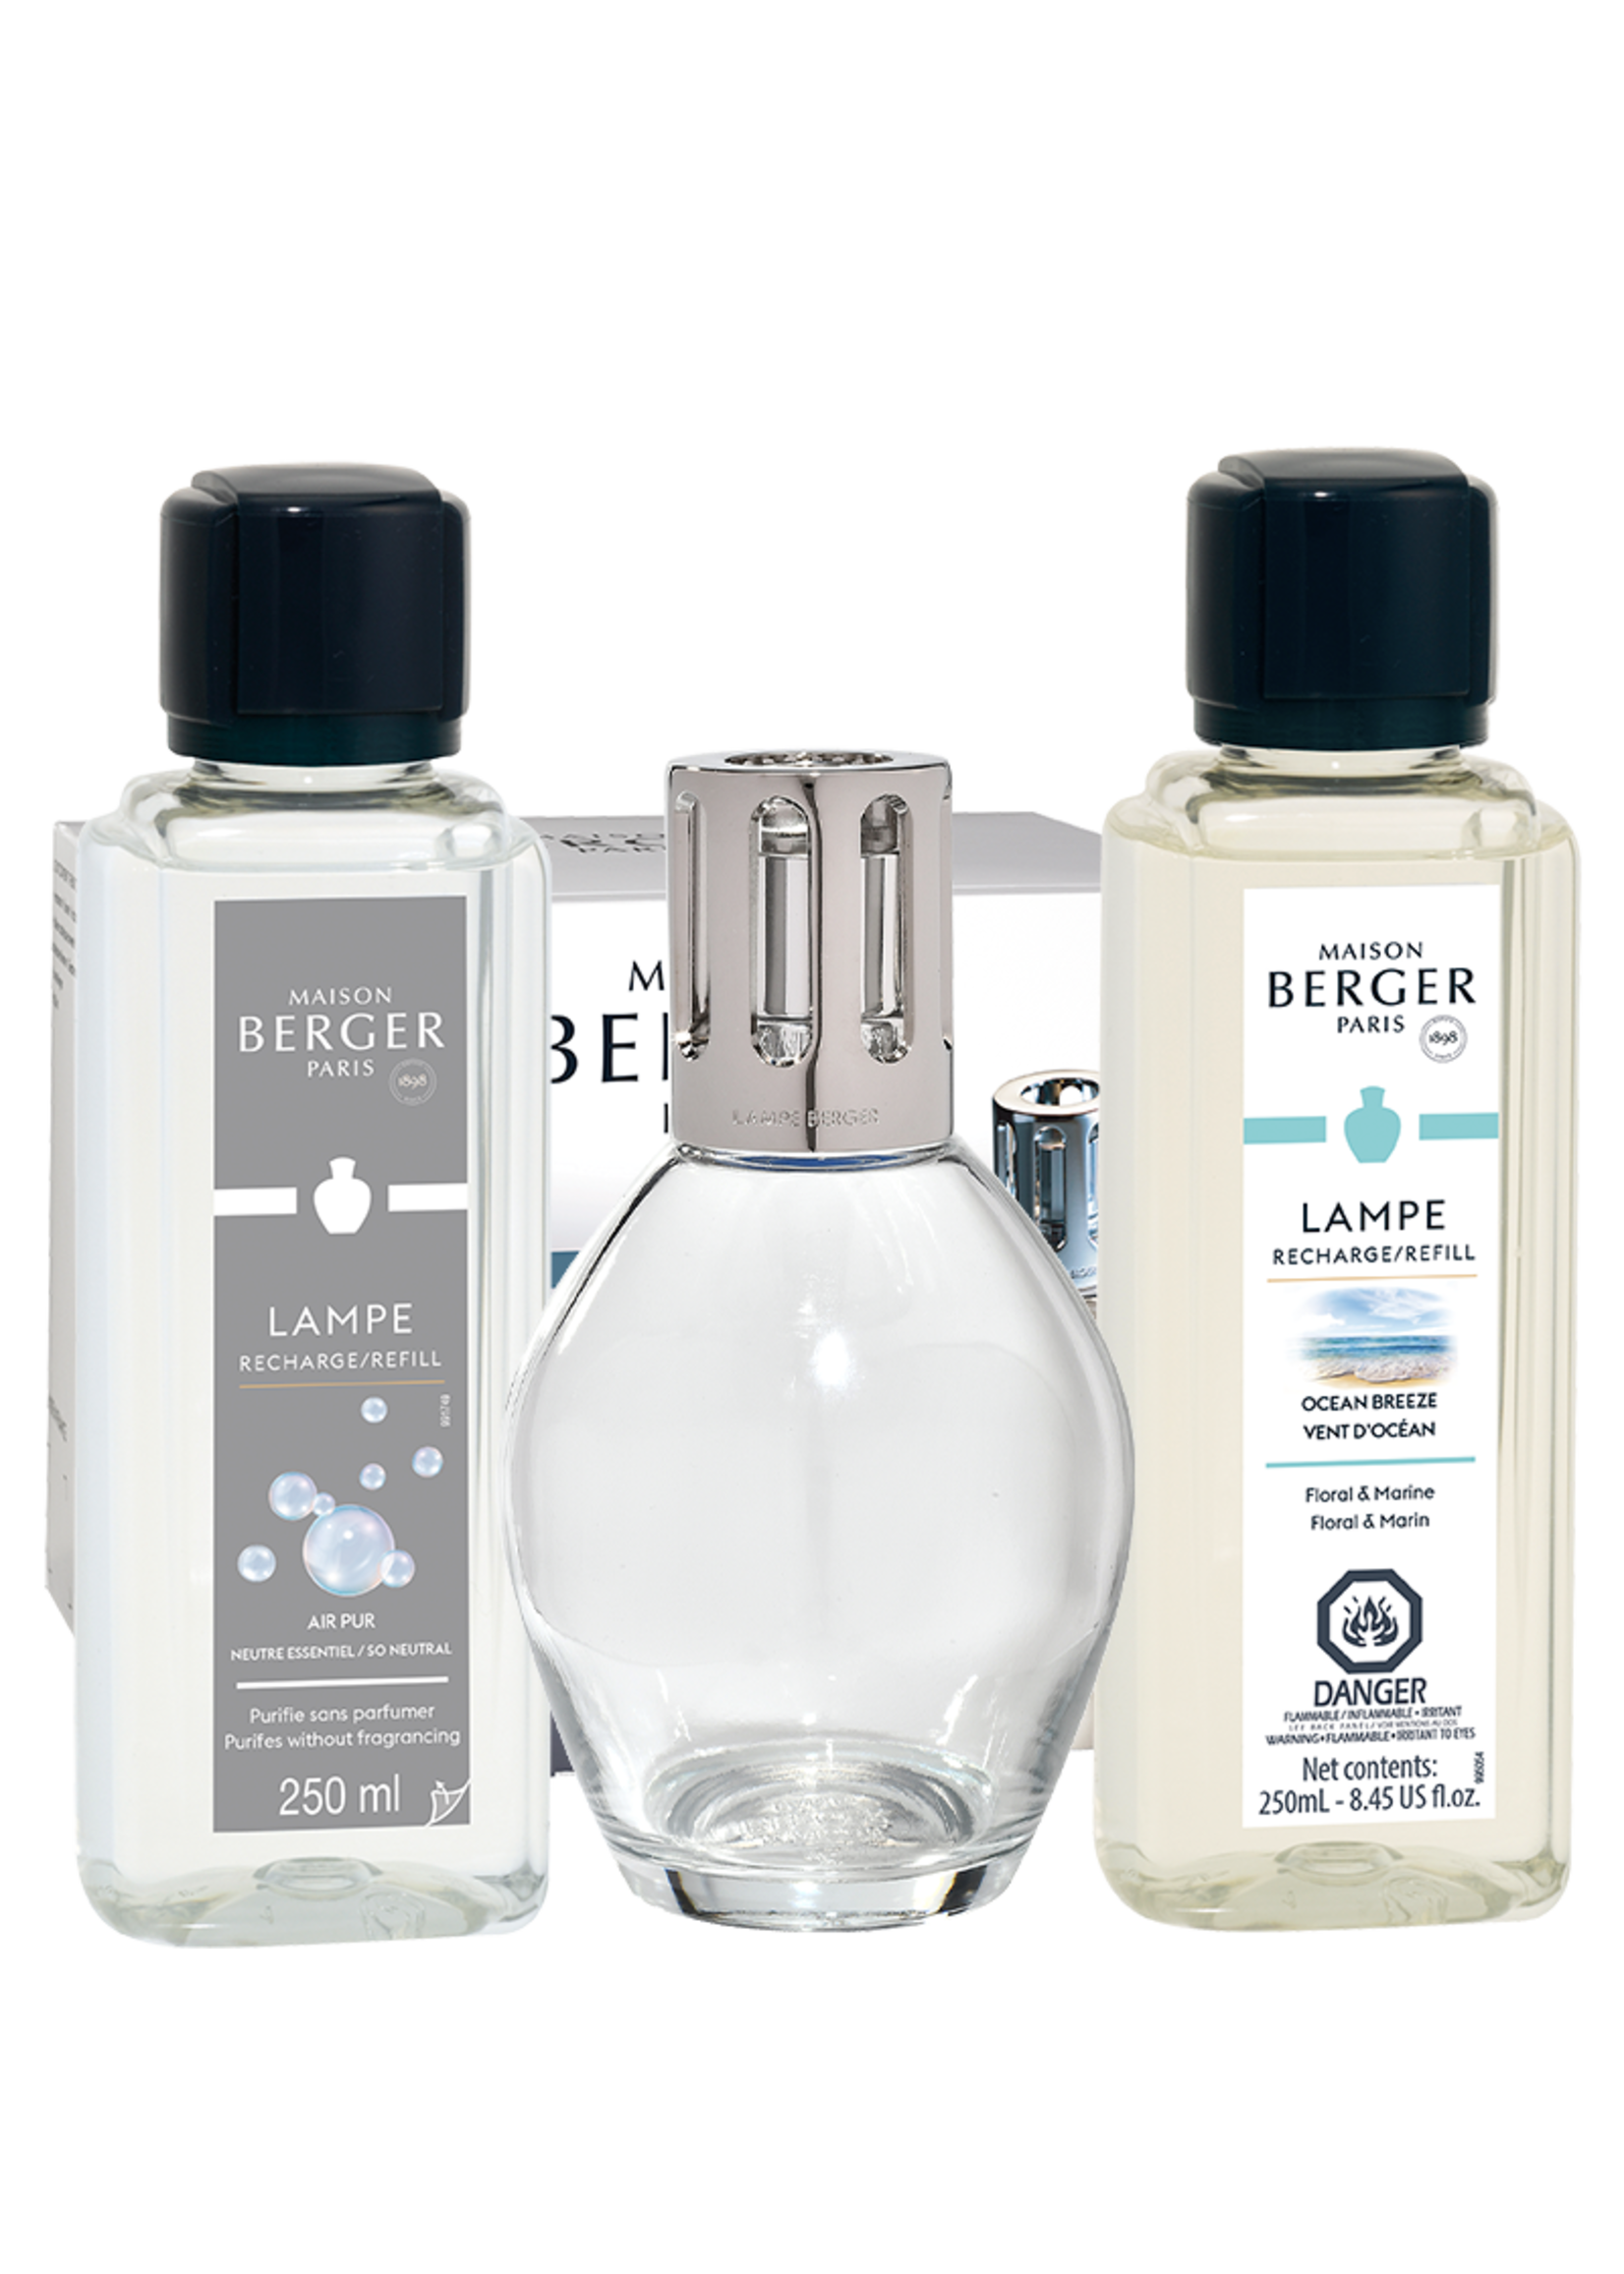 Maison Berger Essential Oval Gift Set